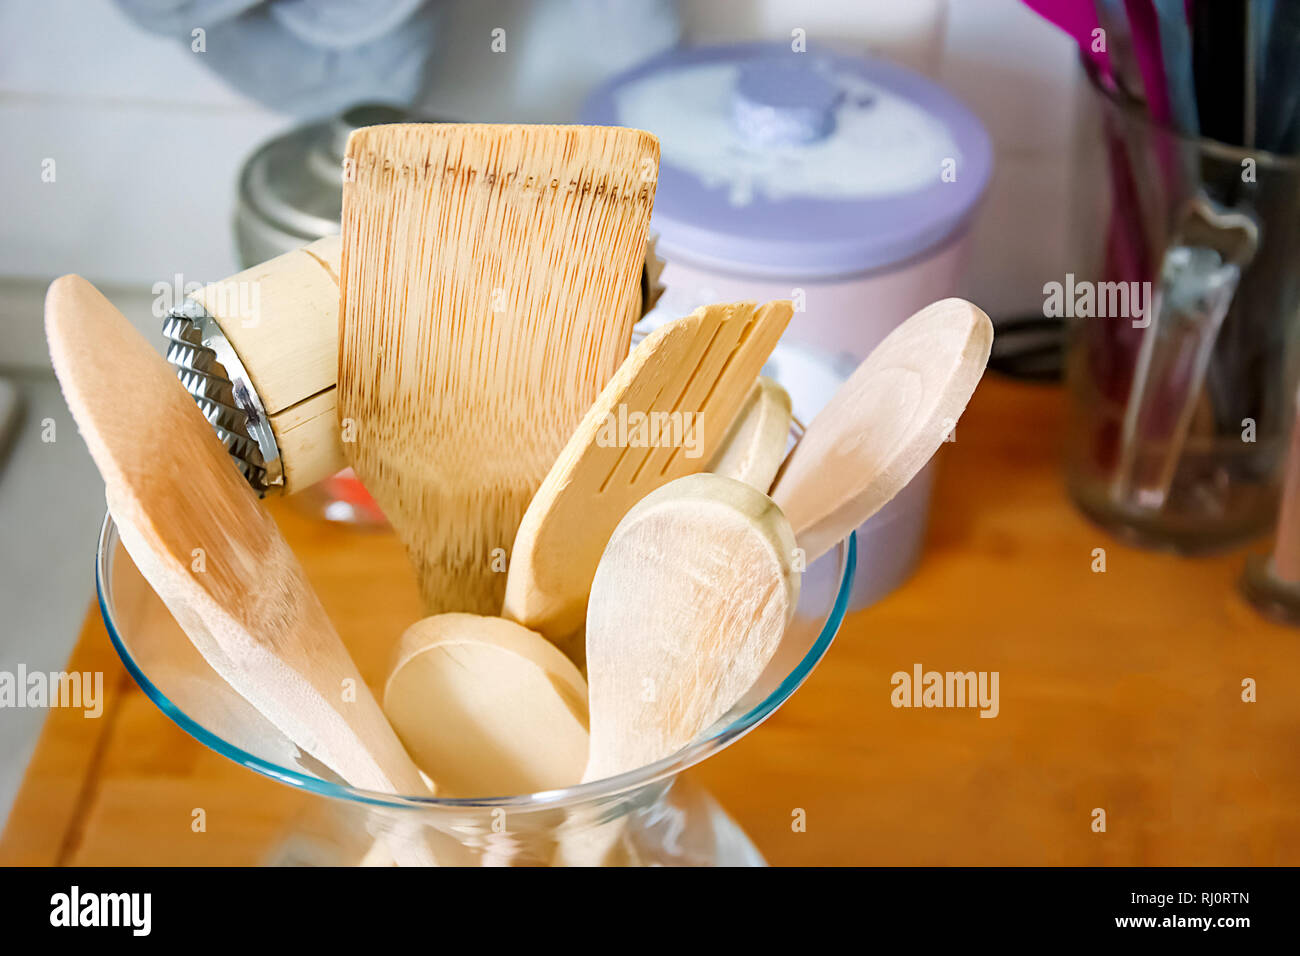 Wooden kitchen utensils in a glass container. Kitchen interior shot. Home decor and cooking concept Stock Photo